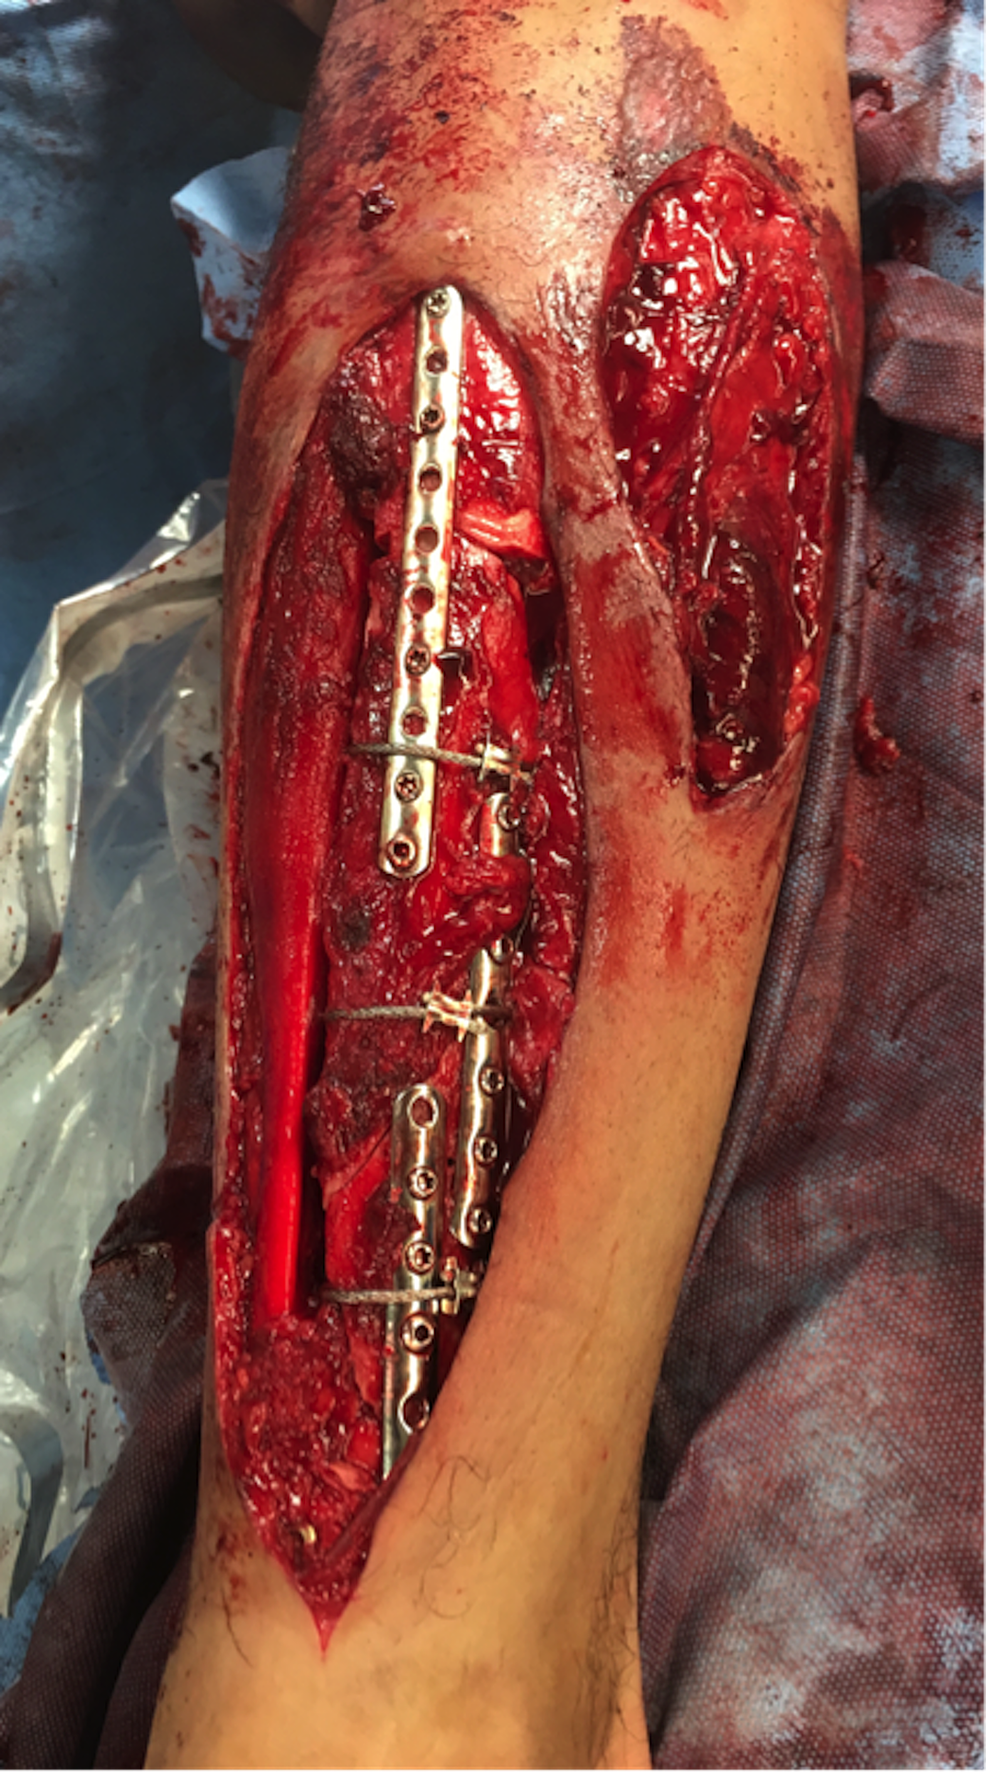 Initial-wound-debridement-and-fracture-stabilization